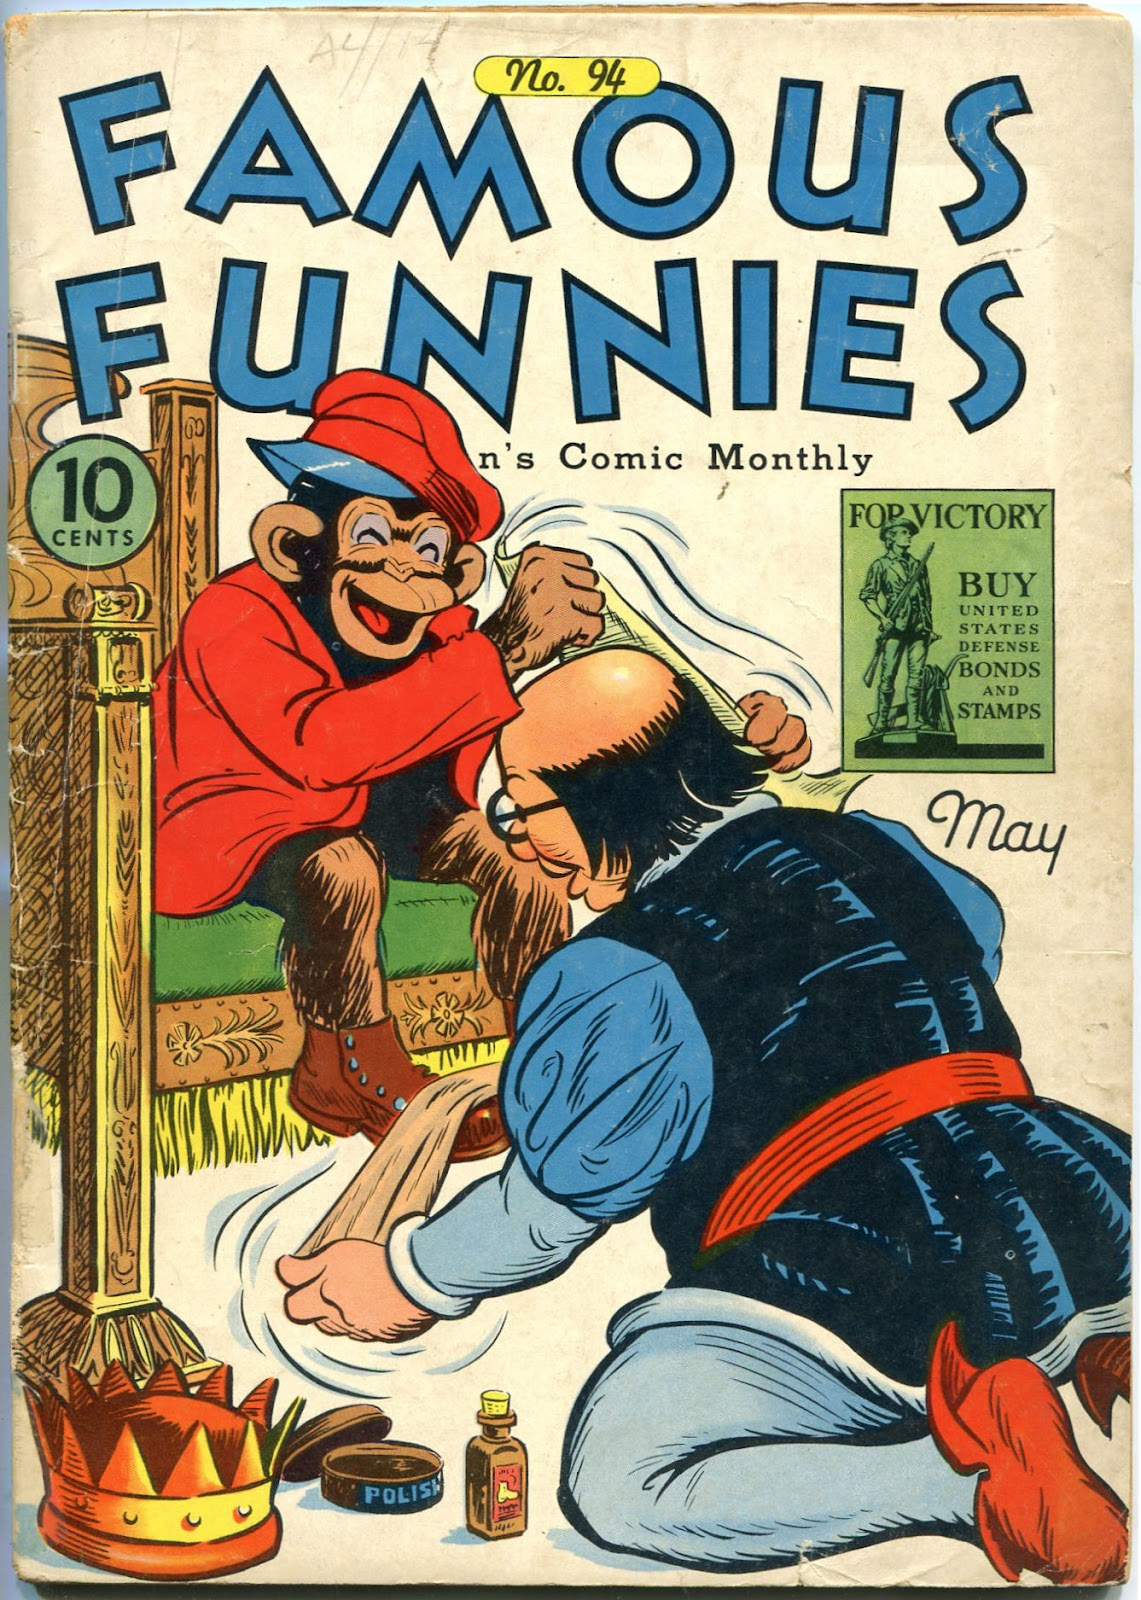 Read online Famous Funnies comic -  Issue #94 - 1